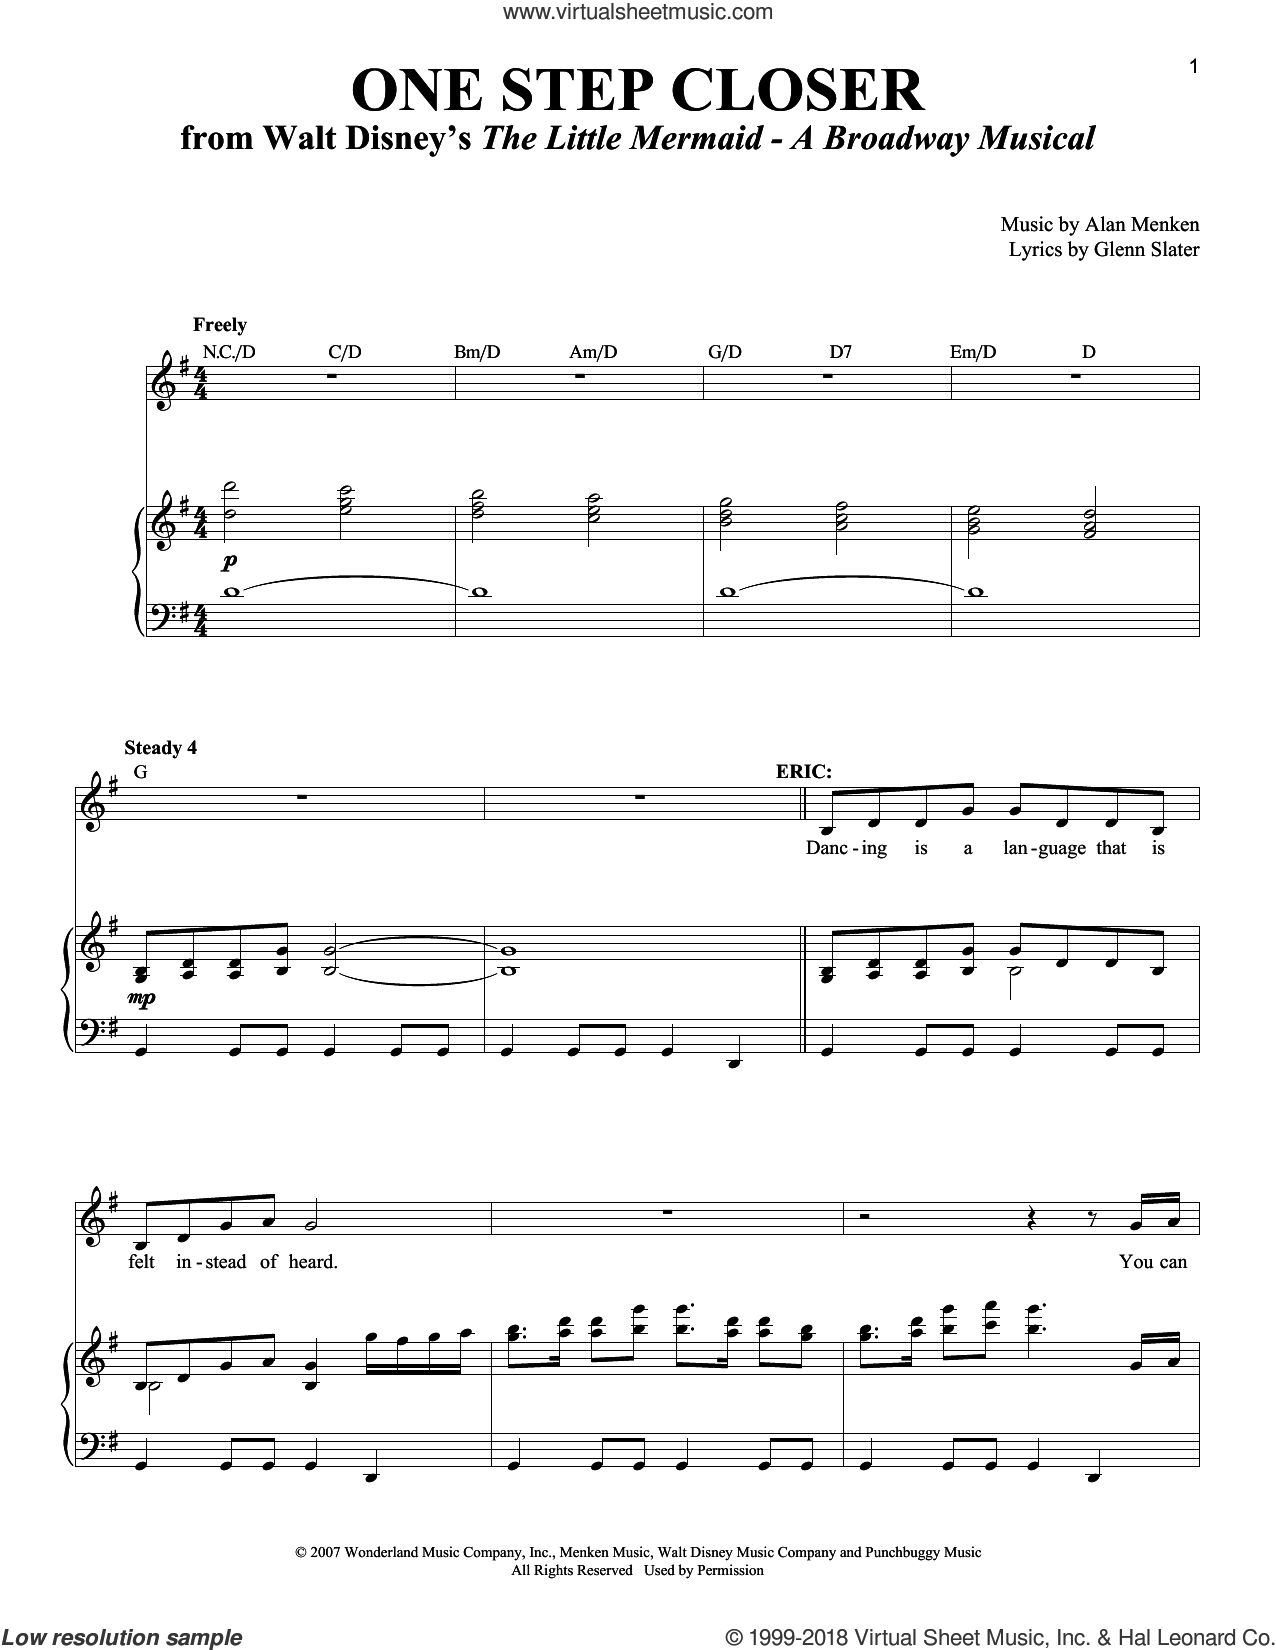 One Step Closer sheet music for voice and piano by Alan Menken and Glenn Slater, intermediate